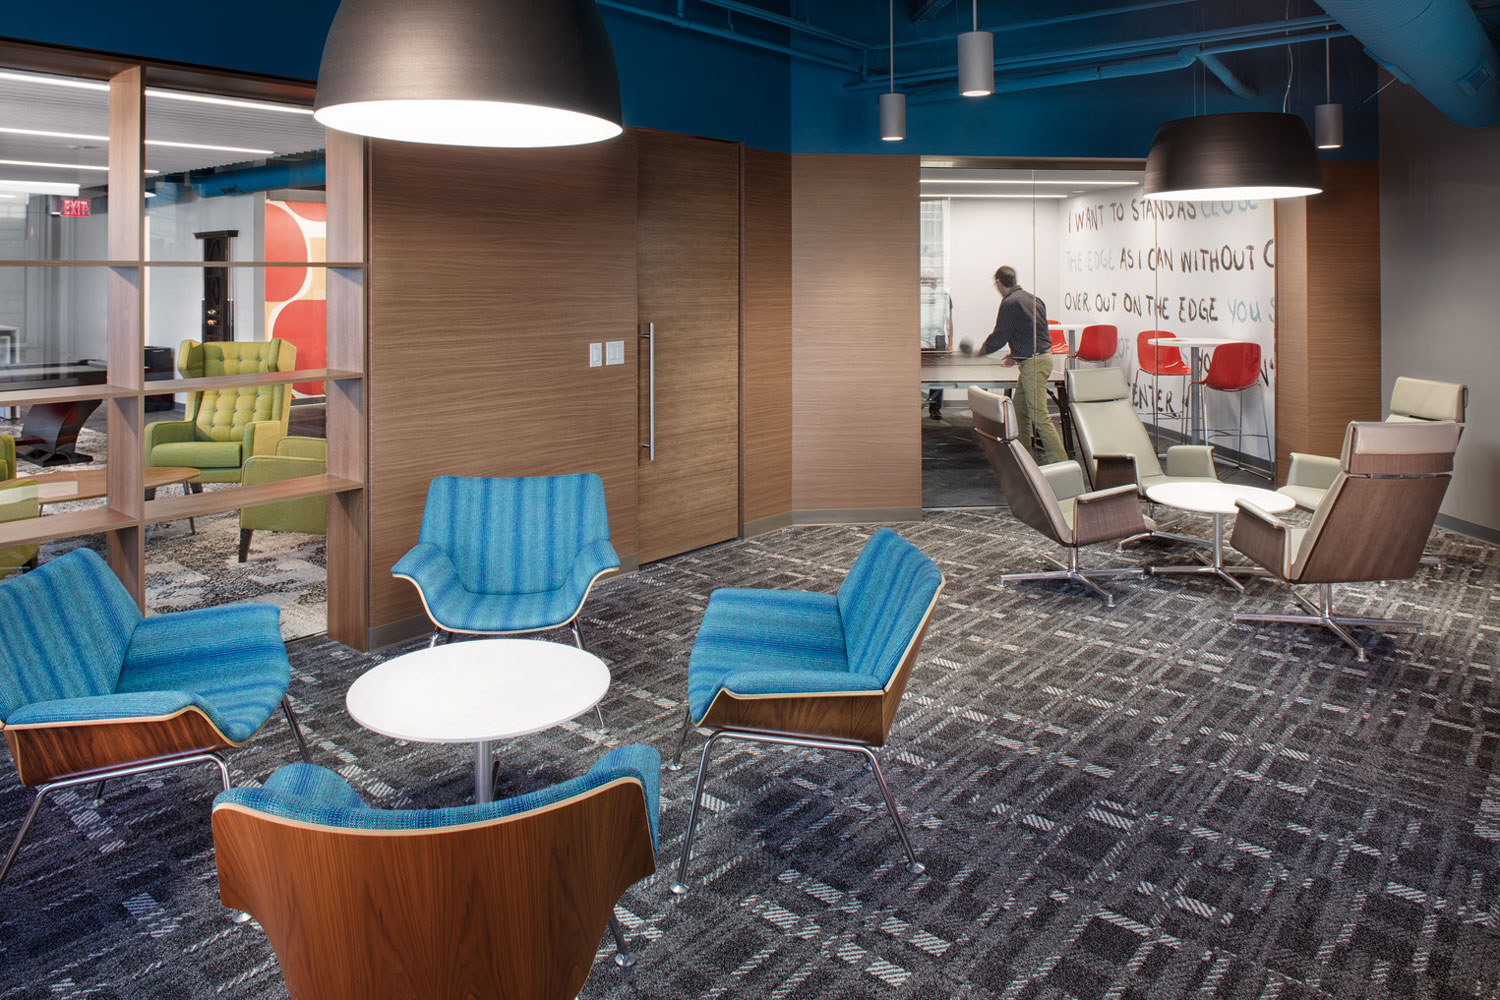 A reimagined lounge to reimagine the workday